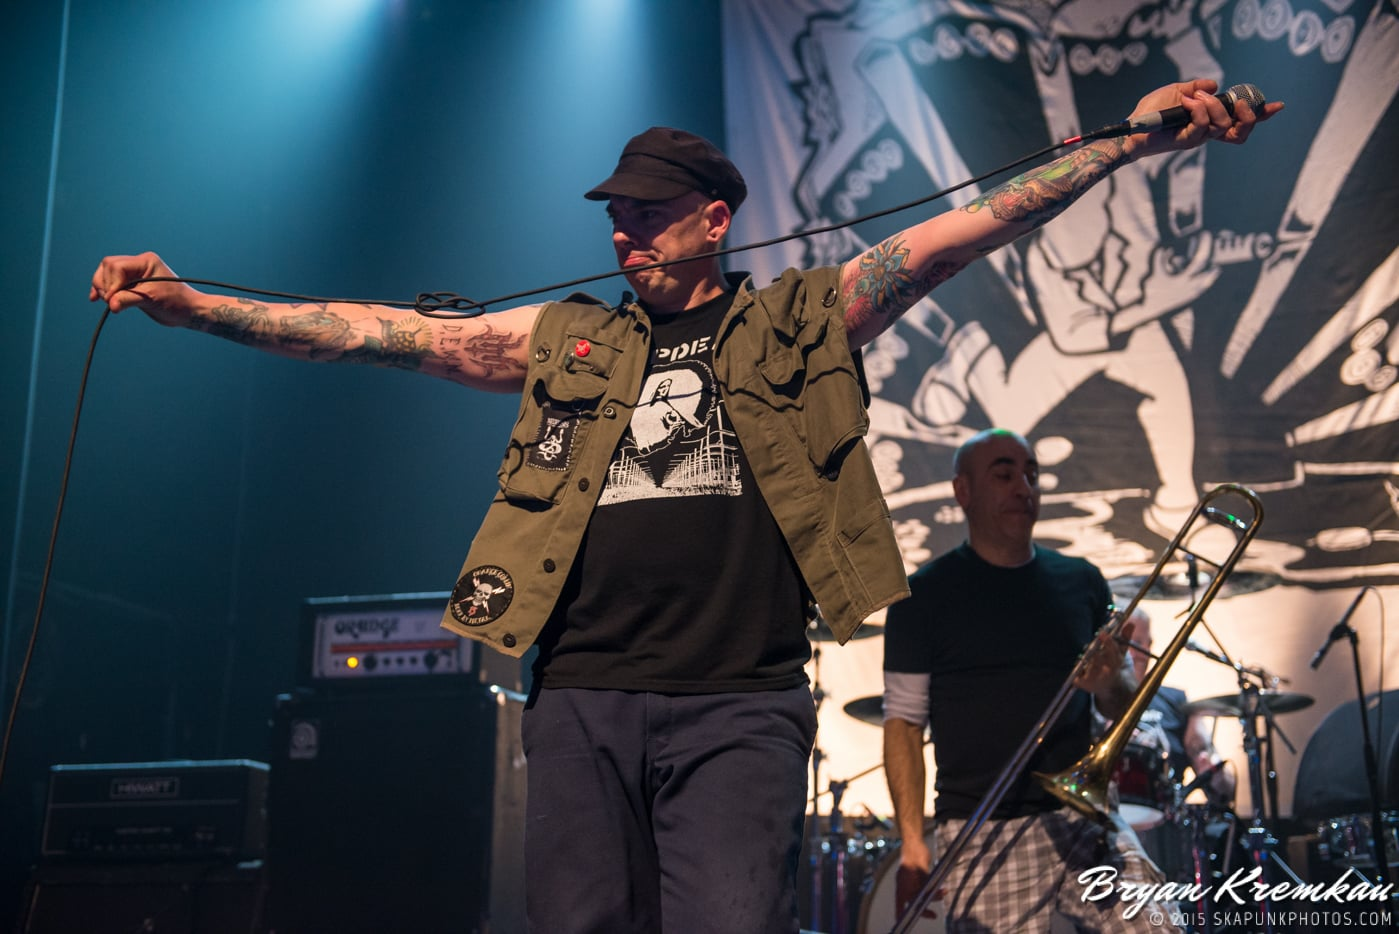 The Suicide Machines @ Gramercy Theatre, NYC - 4.10.15 (13)